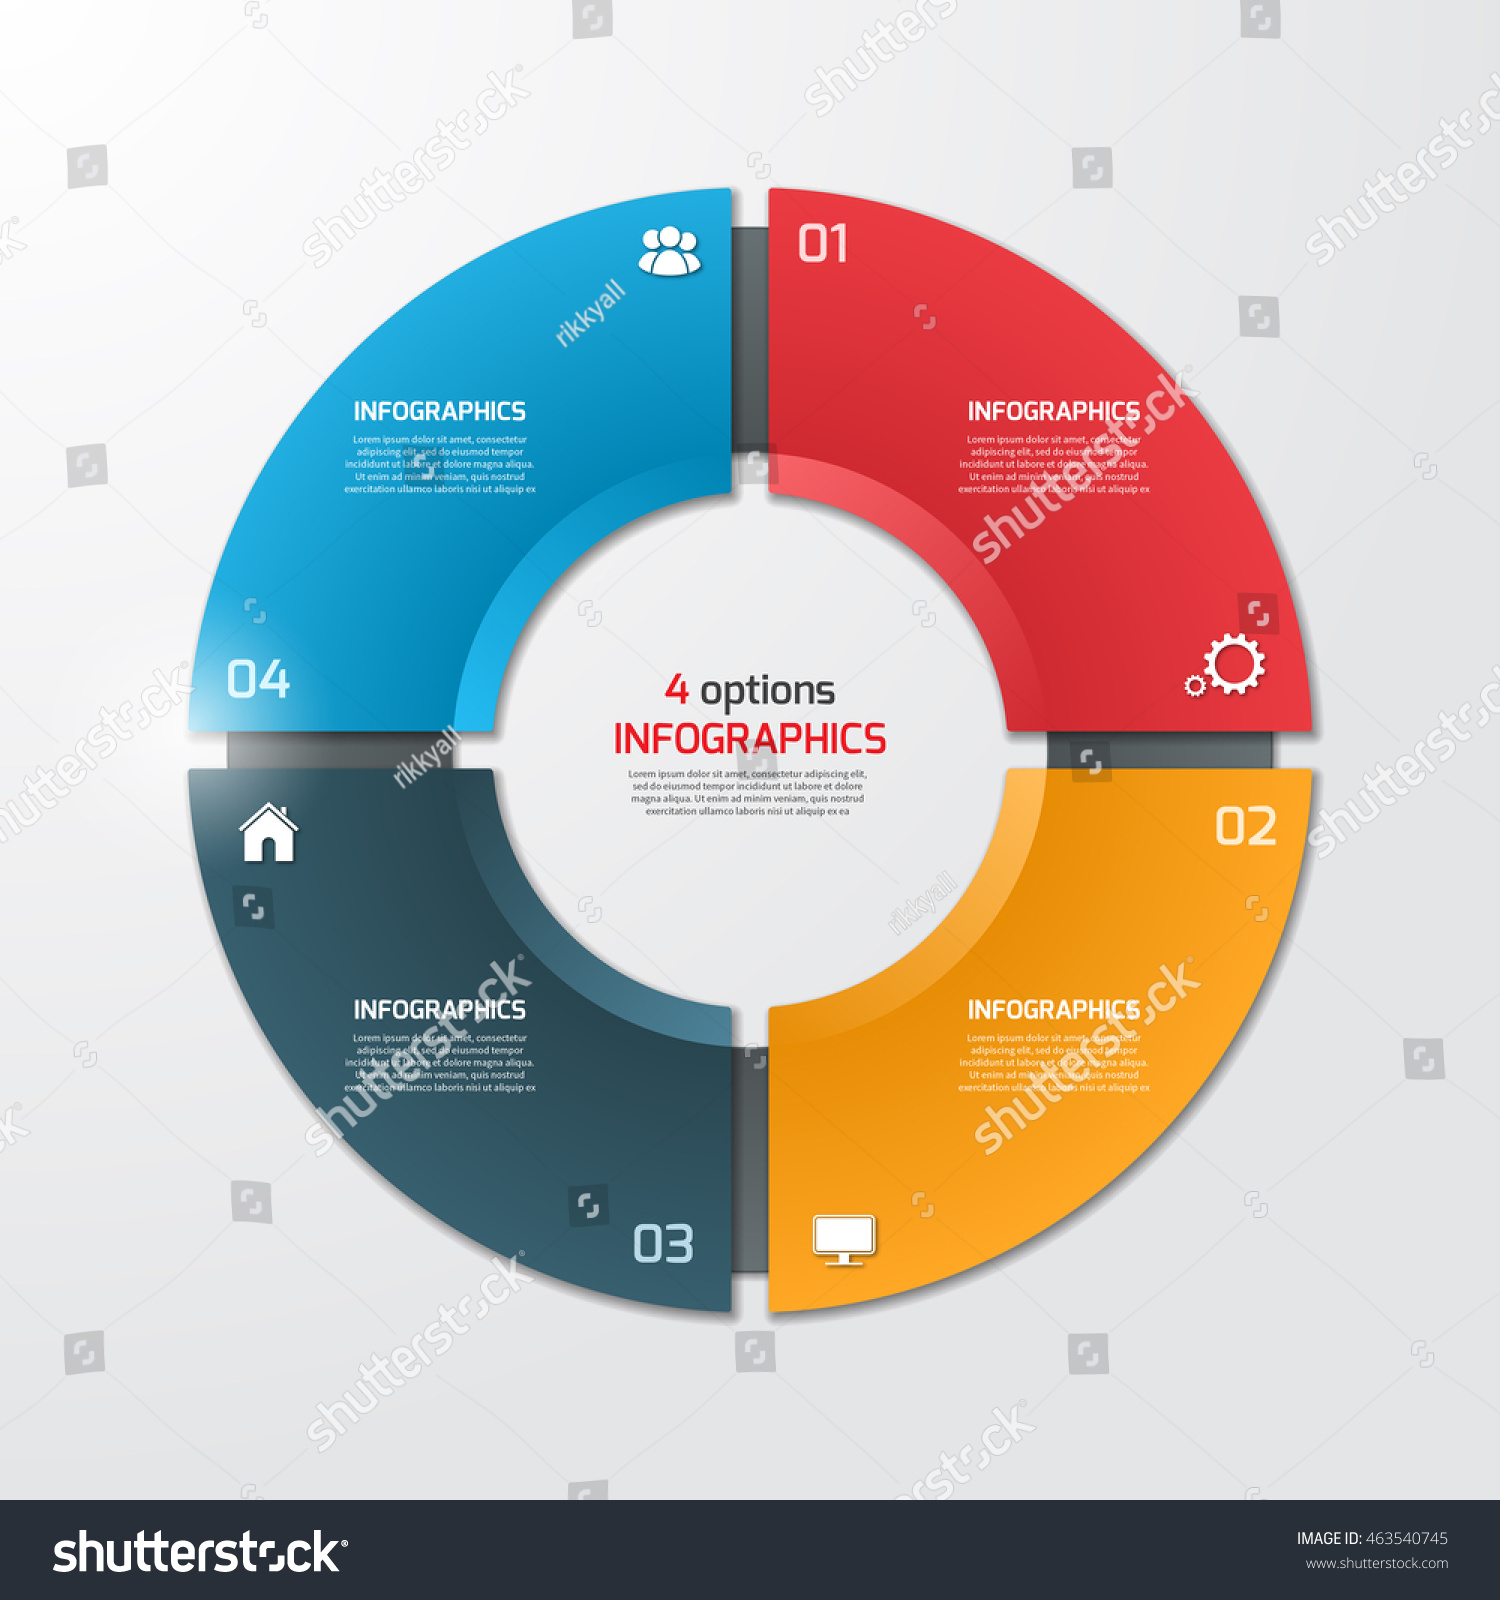 hight resolution of pie chart circle infographic template with 4 options business concept vector illustration